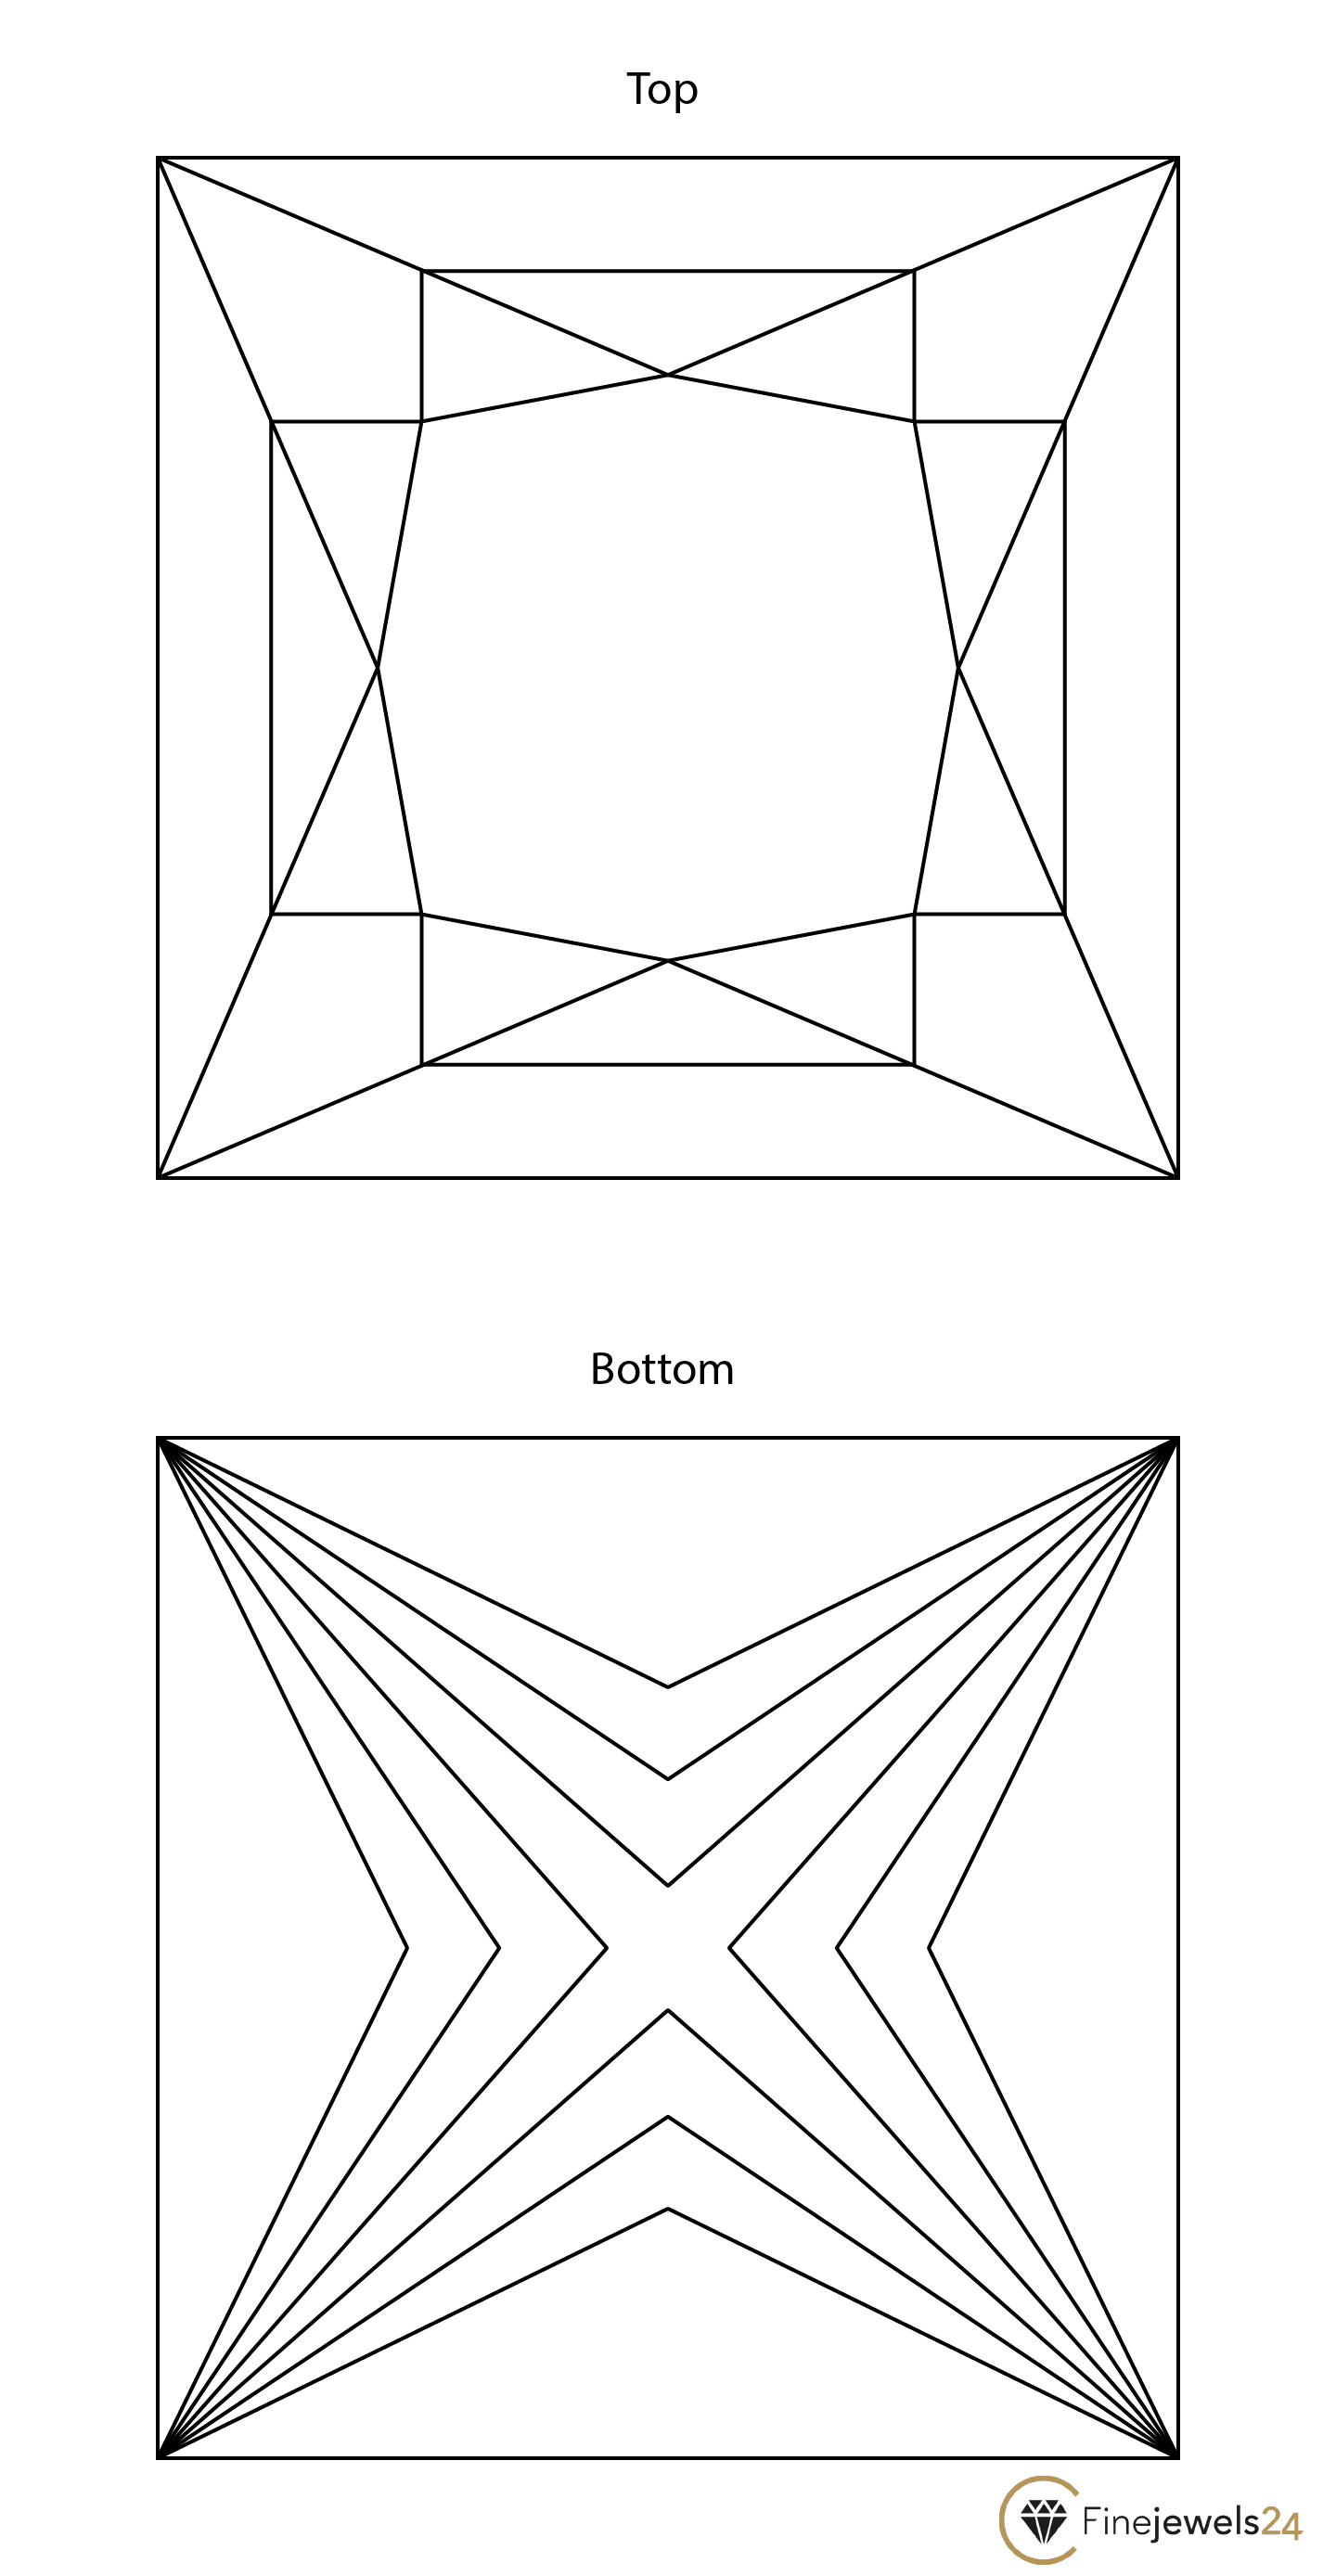 Princess cut sketches of top and bottom view